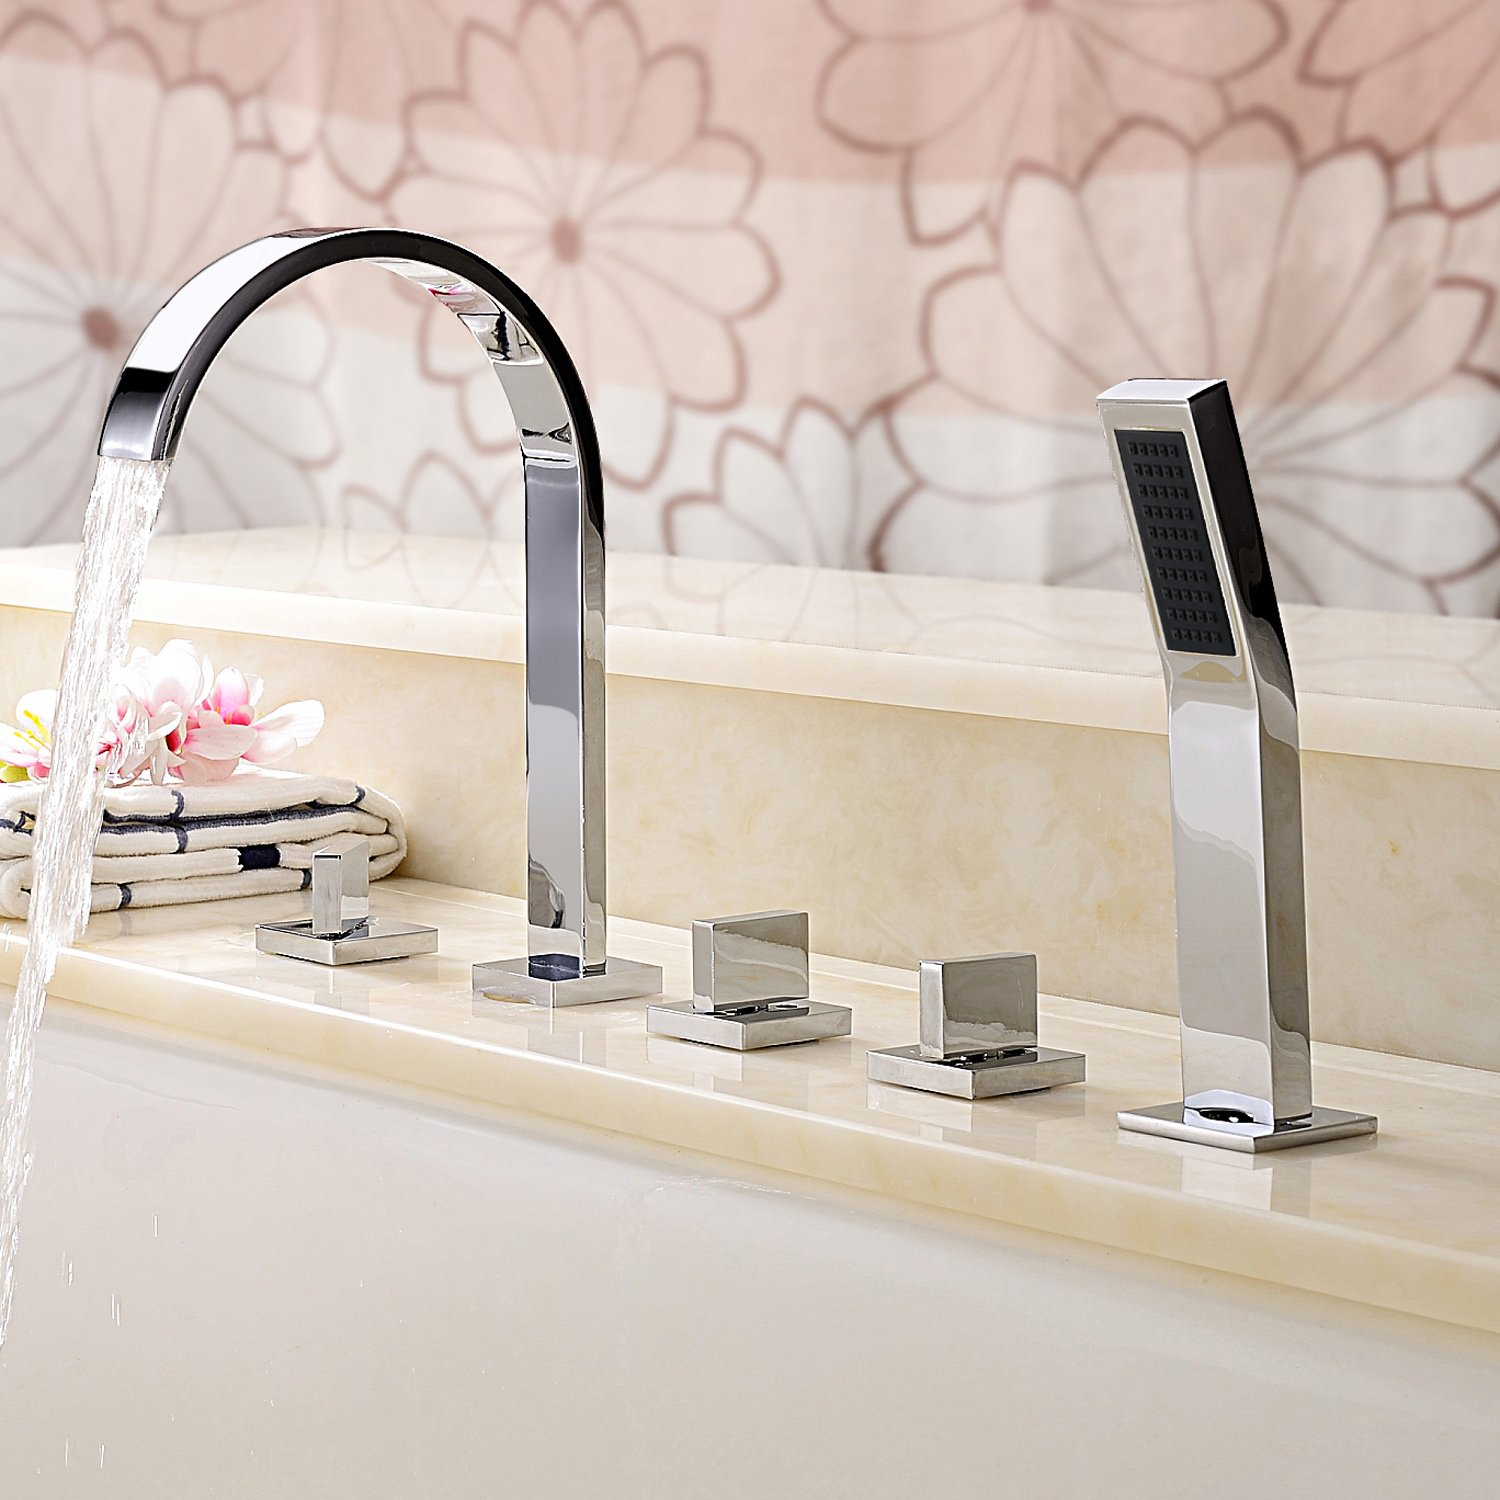 shower and sink faucet sets. Bathroom Deck Mount Bath Tub Three Handles Widespread Waterfall Bathtub  Faucets with Handheld Shower Sets Tall Curve Long Spout Bar Square Hand